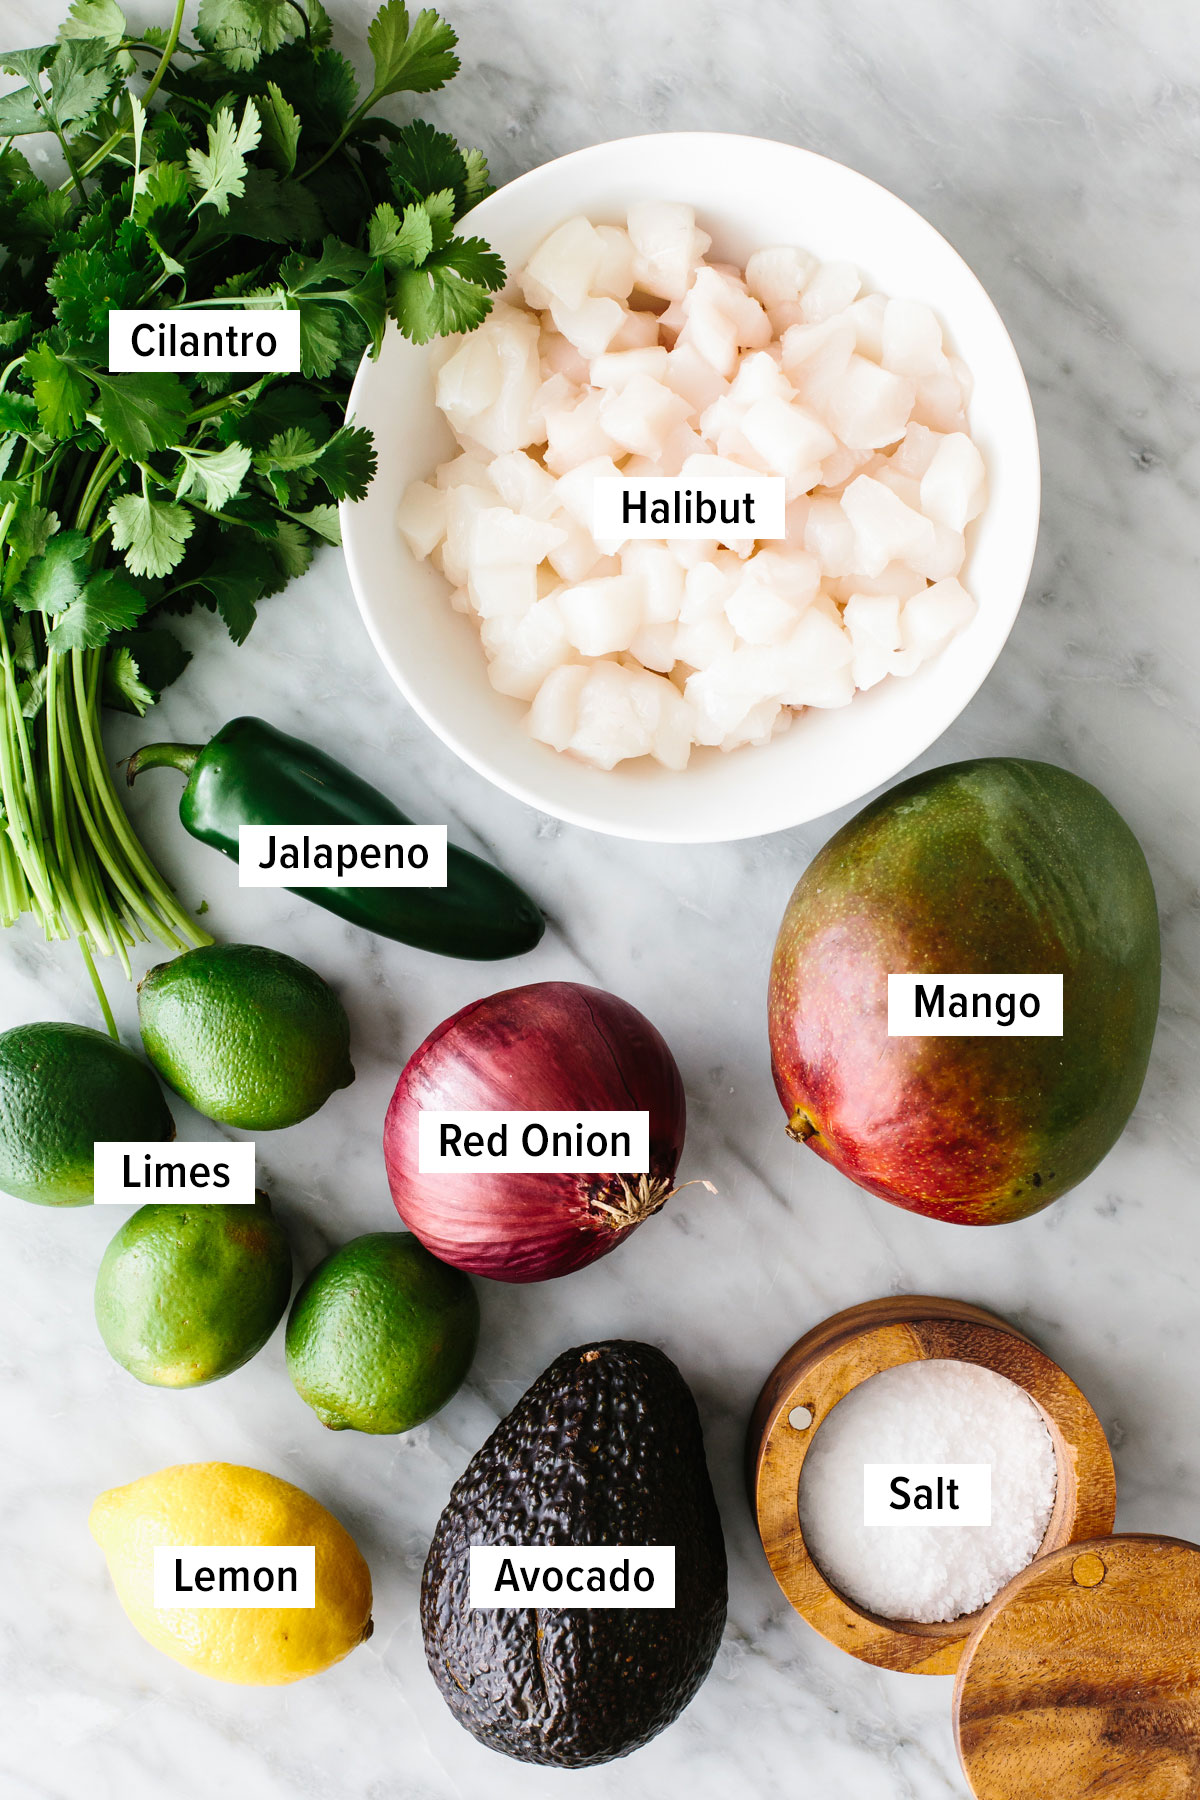 Ingredients for mango halibut ceviche on a table.